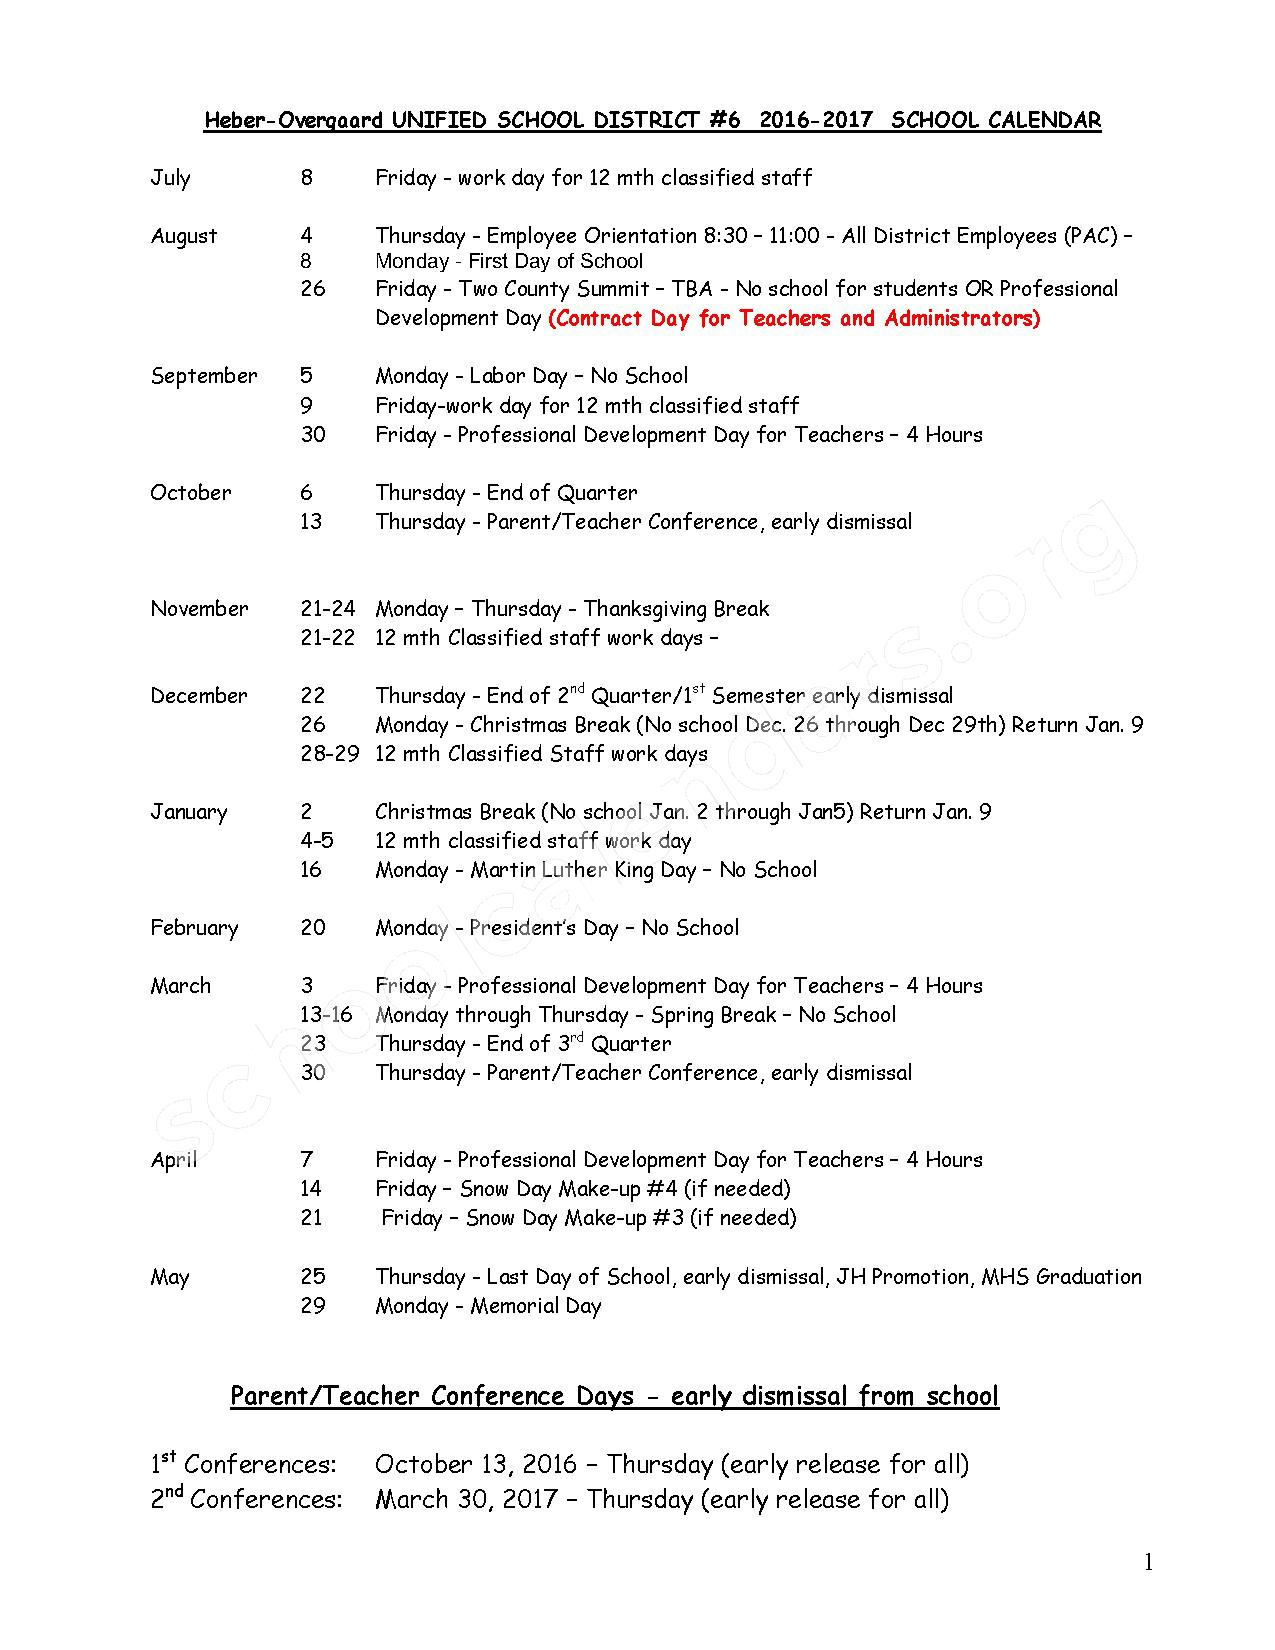 2016 - 2017 School Calendar – Heber-Overgaard Unified School District #6 – page 1